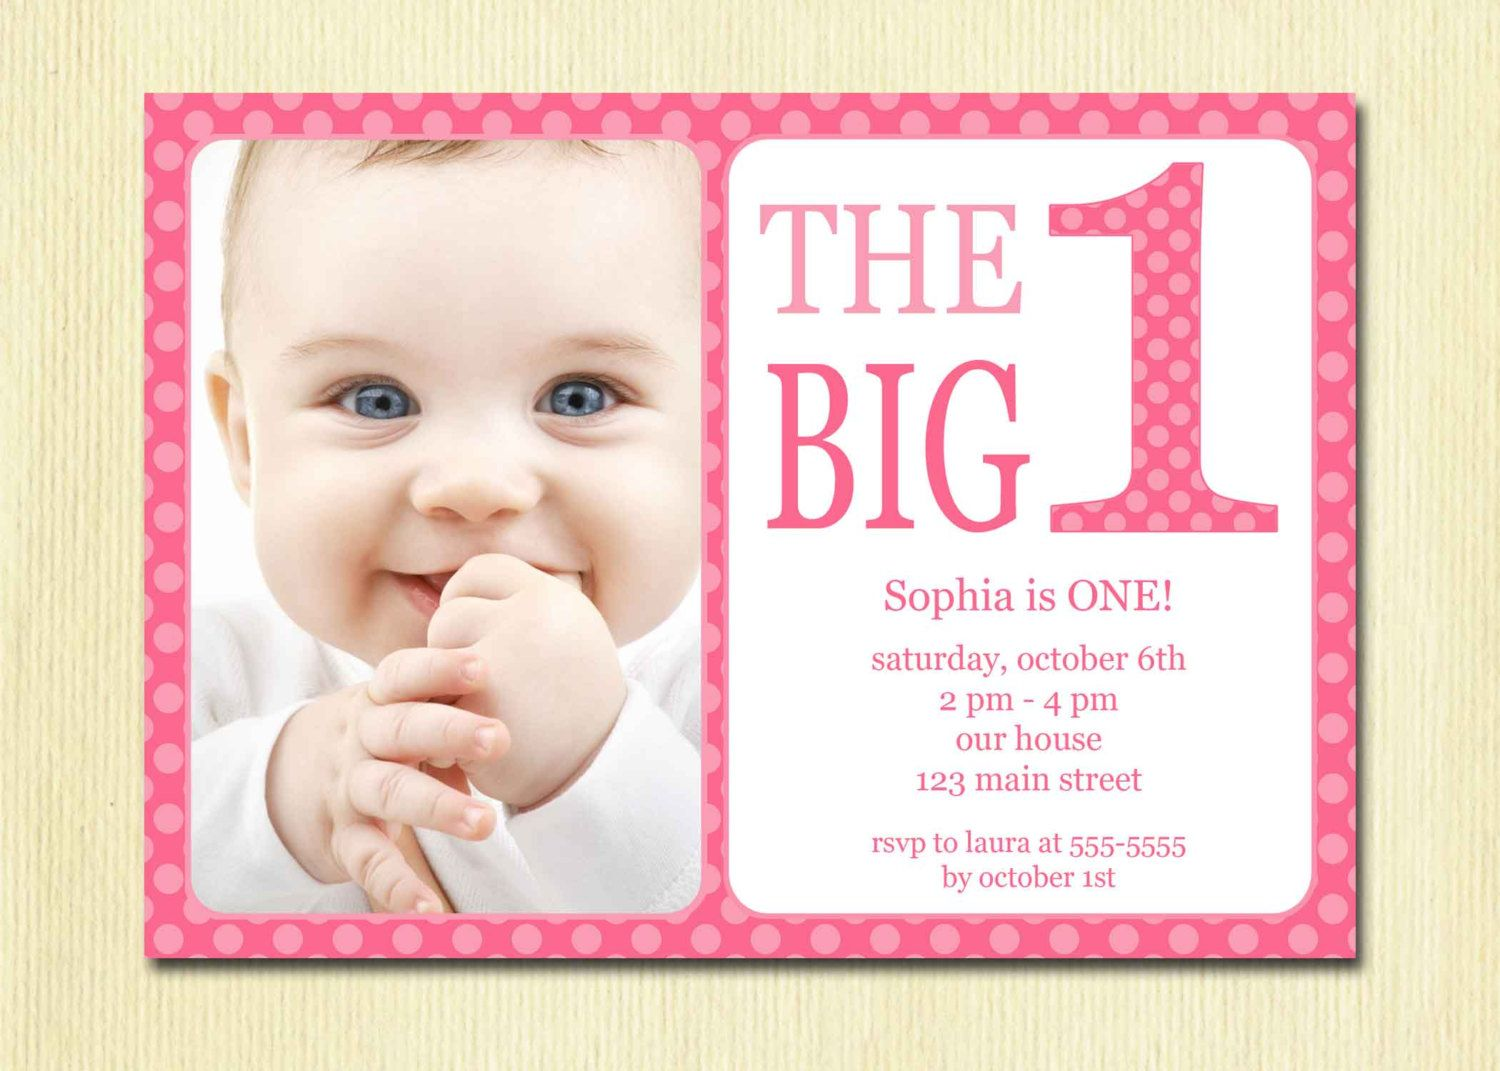 Download now free printable 1st birthday invitations free download now free printable 1st birthday invitations filmwisefo